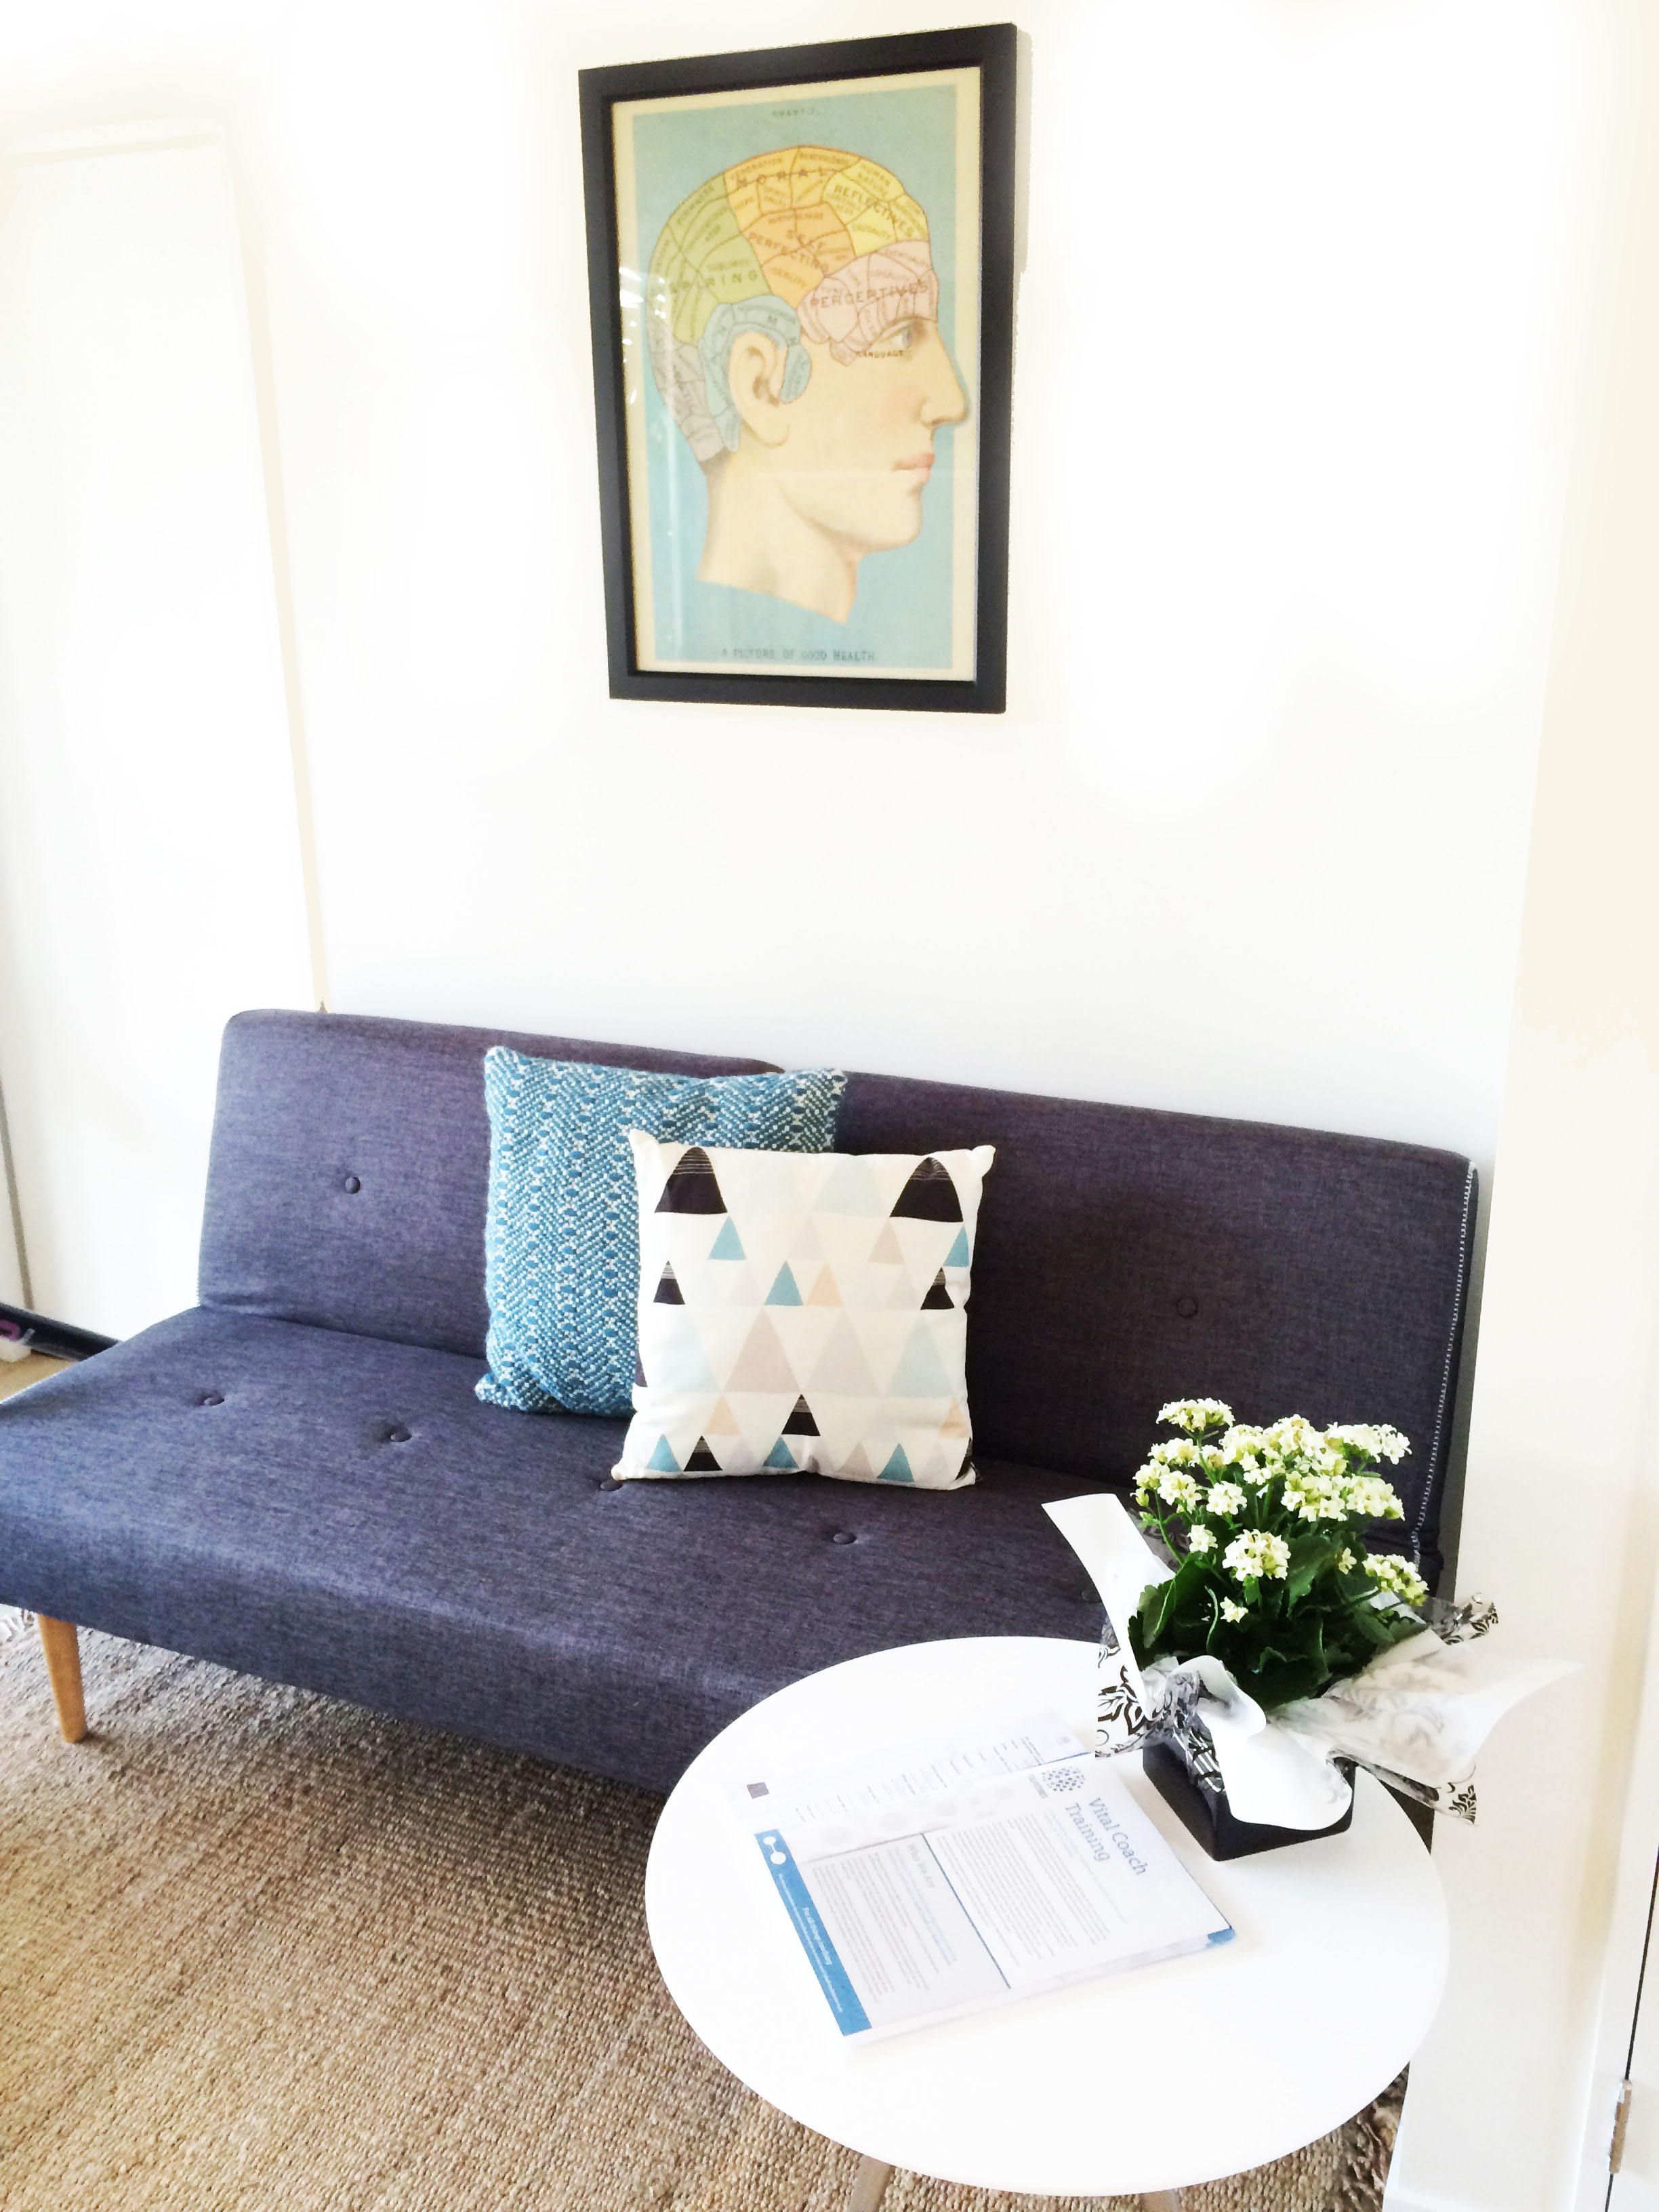 Couch with coloured pillows and anatomy artwork in background